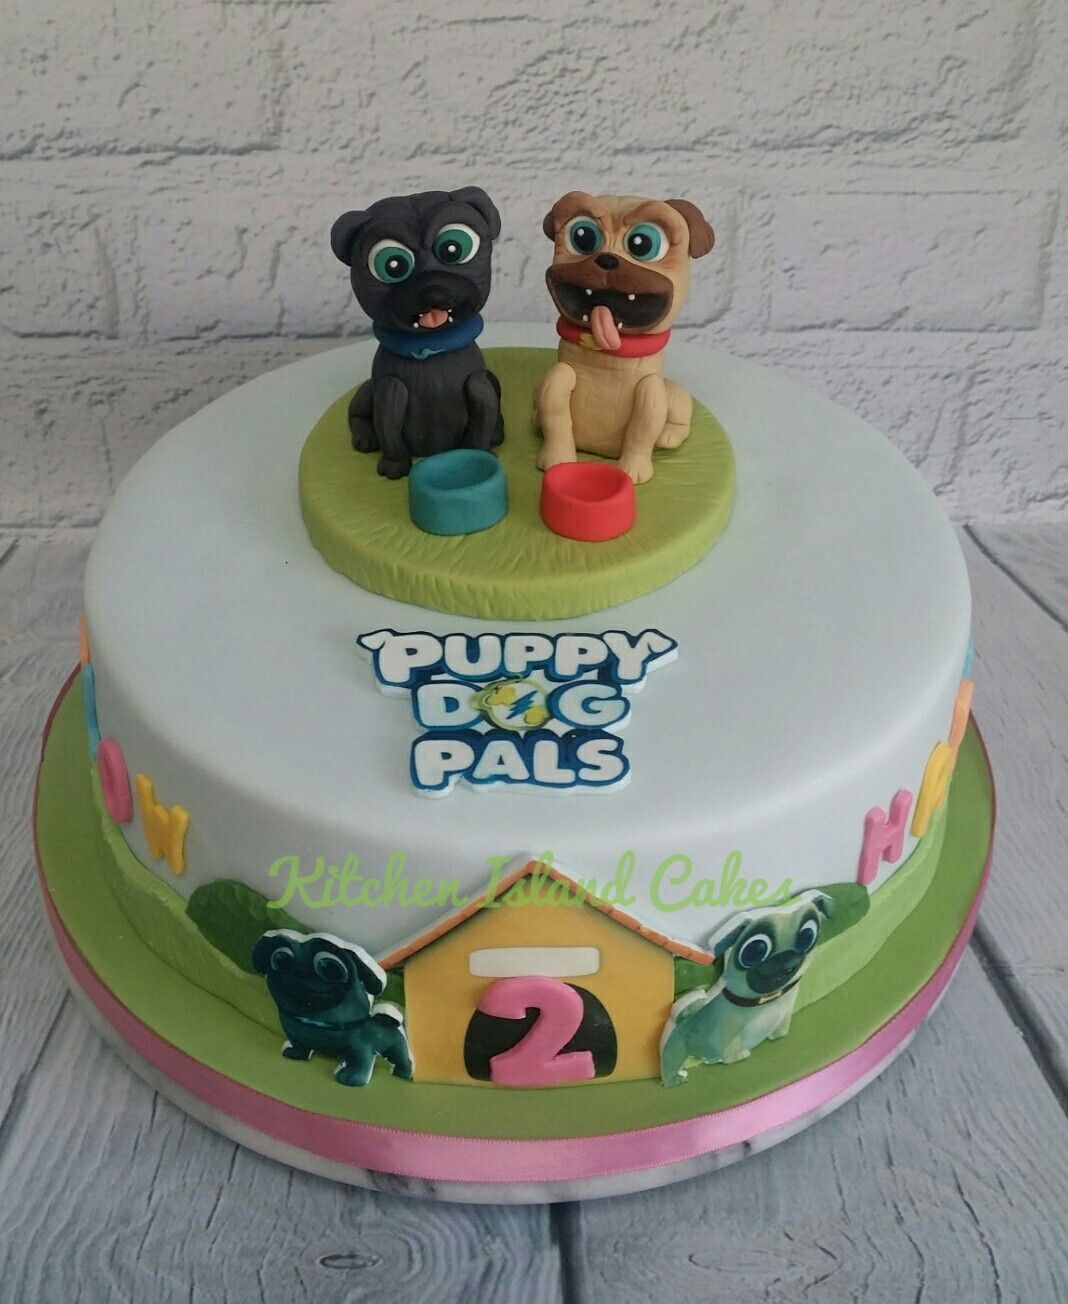 Puppy Dog Pals Birthday Cake With Handmade Toppers By Kitchen